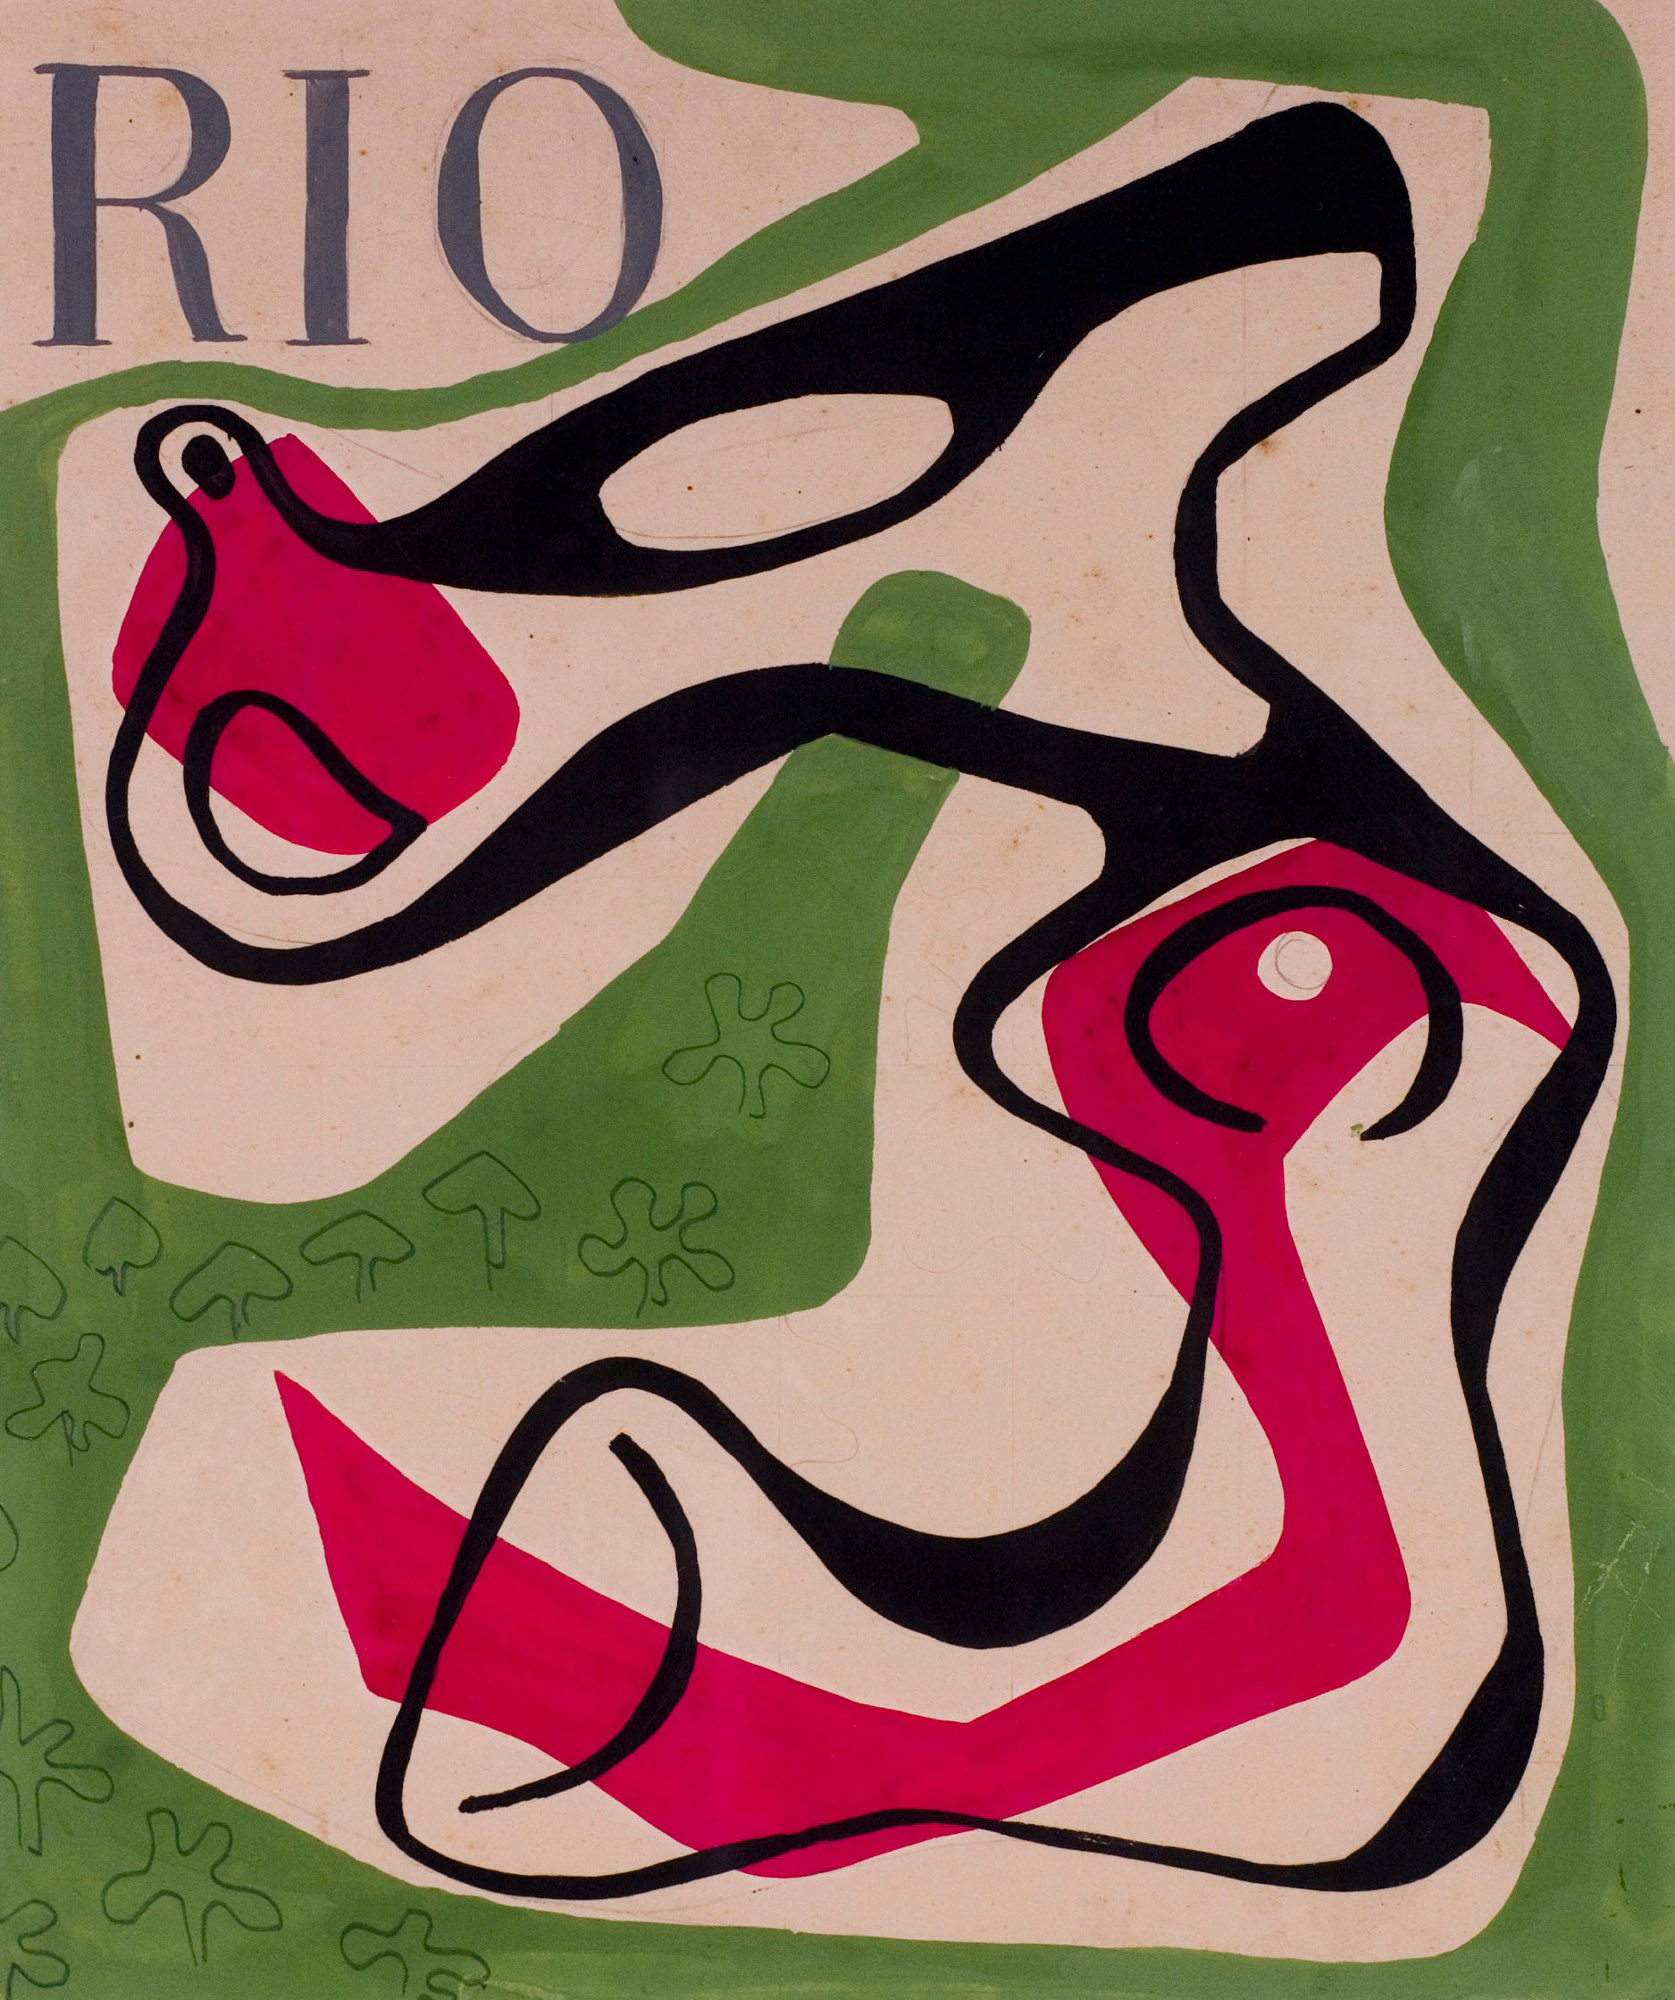 roberto burle marx cover design for the magazine rio gouache on paper x cm courtesy of stio roberto burle marx rio de janeiro